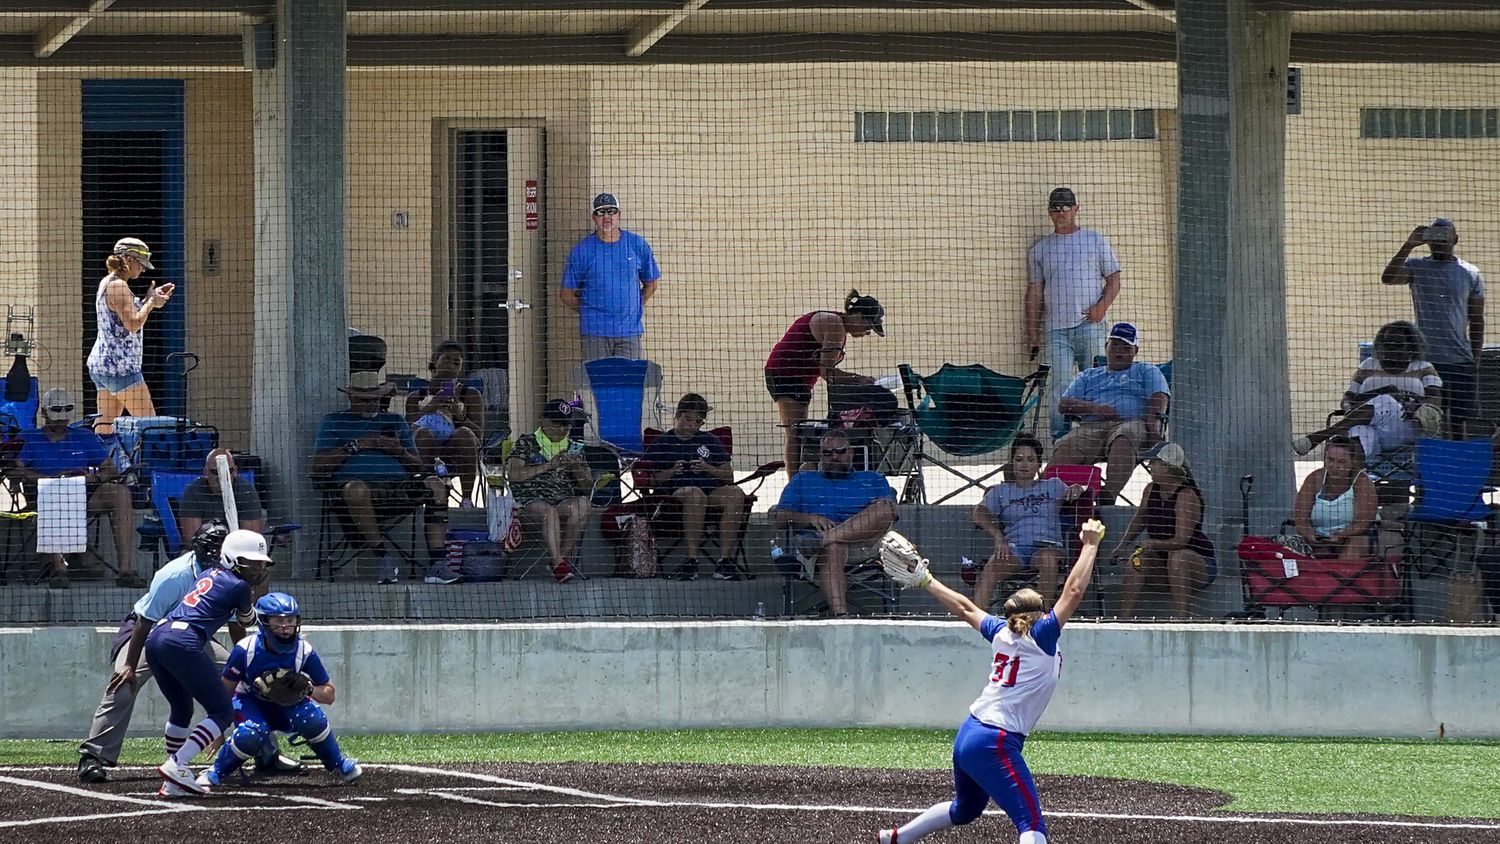 Fans watch a softball game between the Texas Glory 18U team (in white jerseys) and the American Freedom Gold Coleman 18U in the Triple Crown Texas State Tournament at Spirit Park on Monday, June 15, 2020, in Allen, Texas.